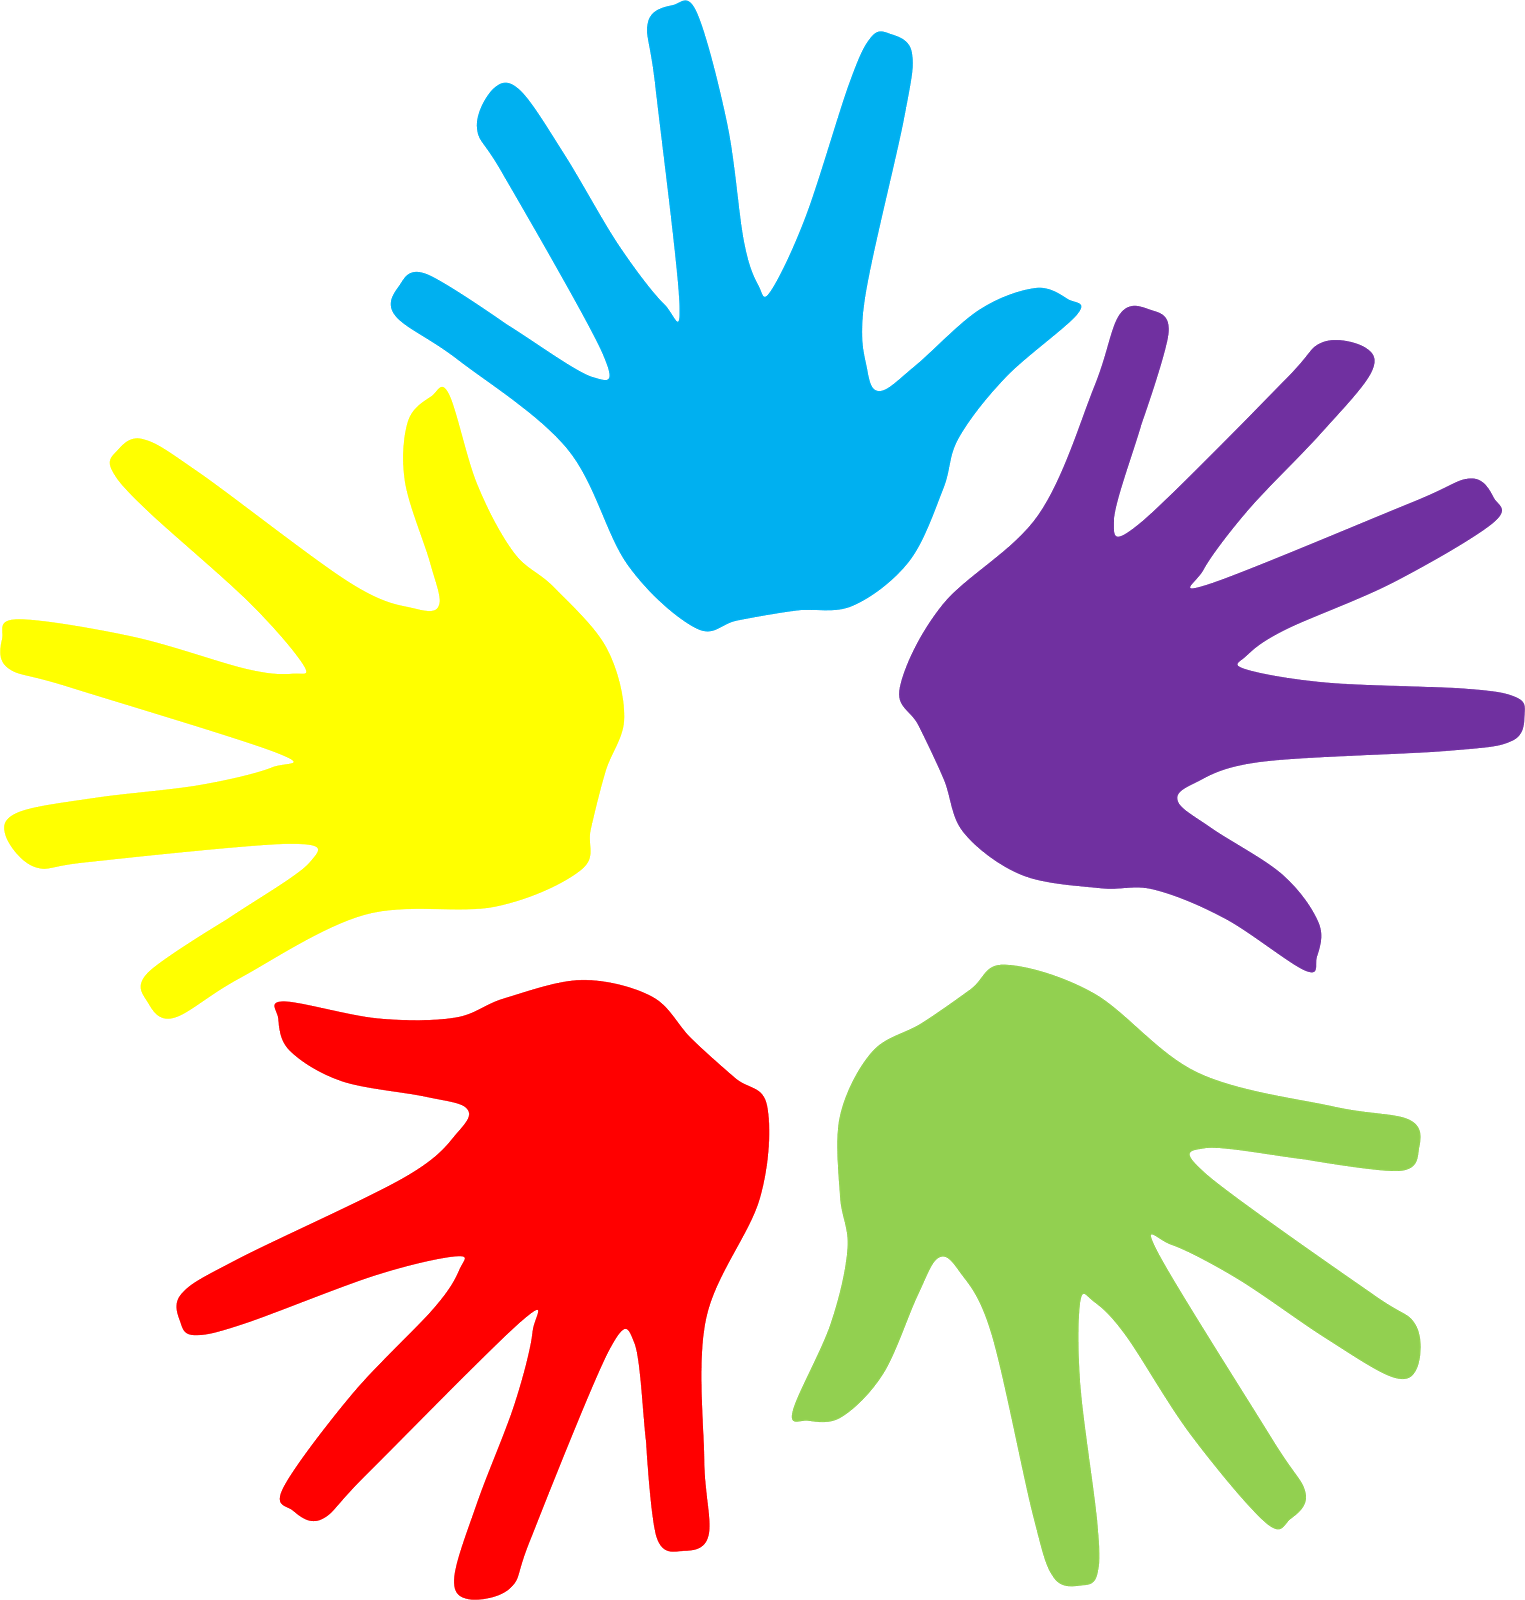 Colorful Hands Clipart Free Cliparts Hand